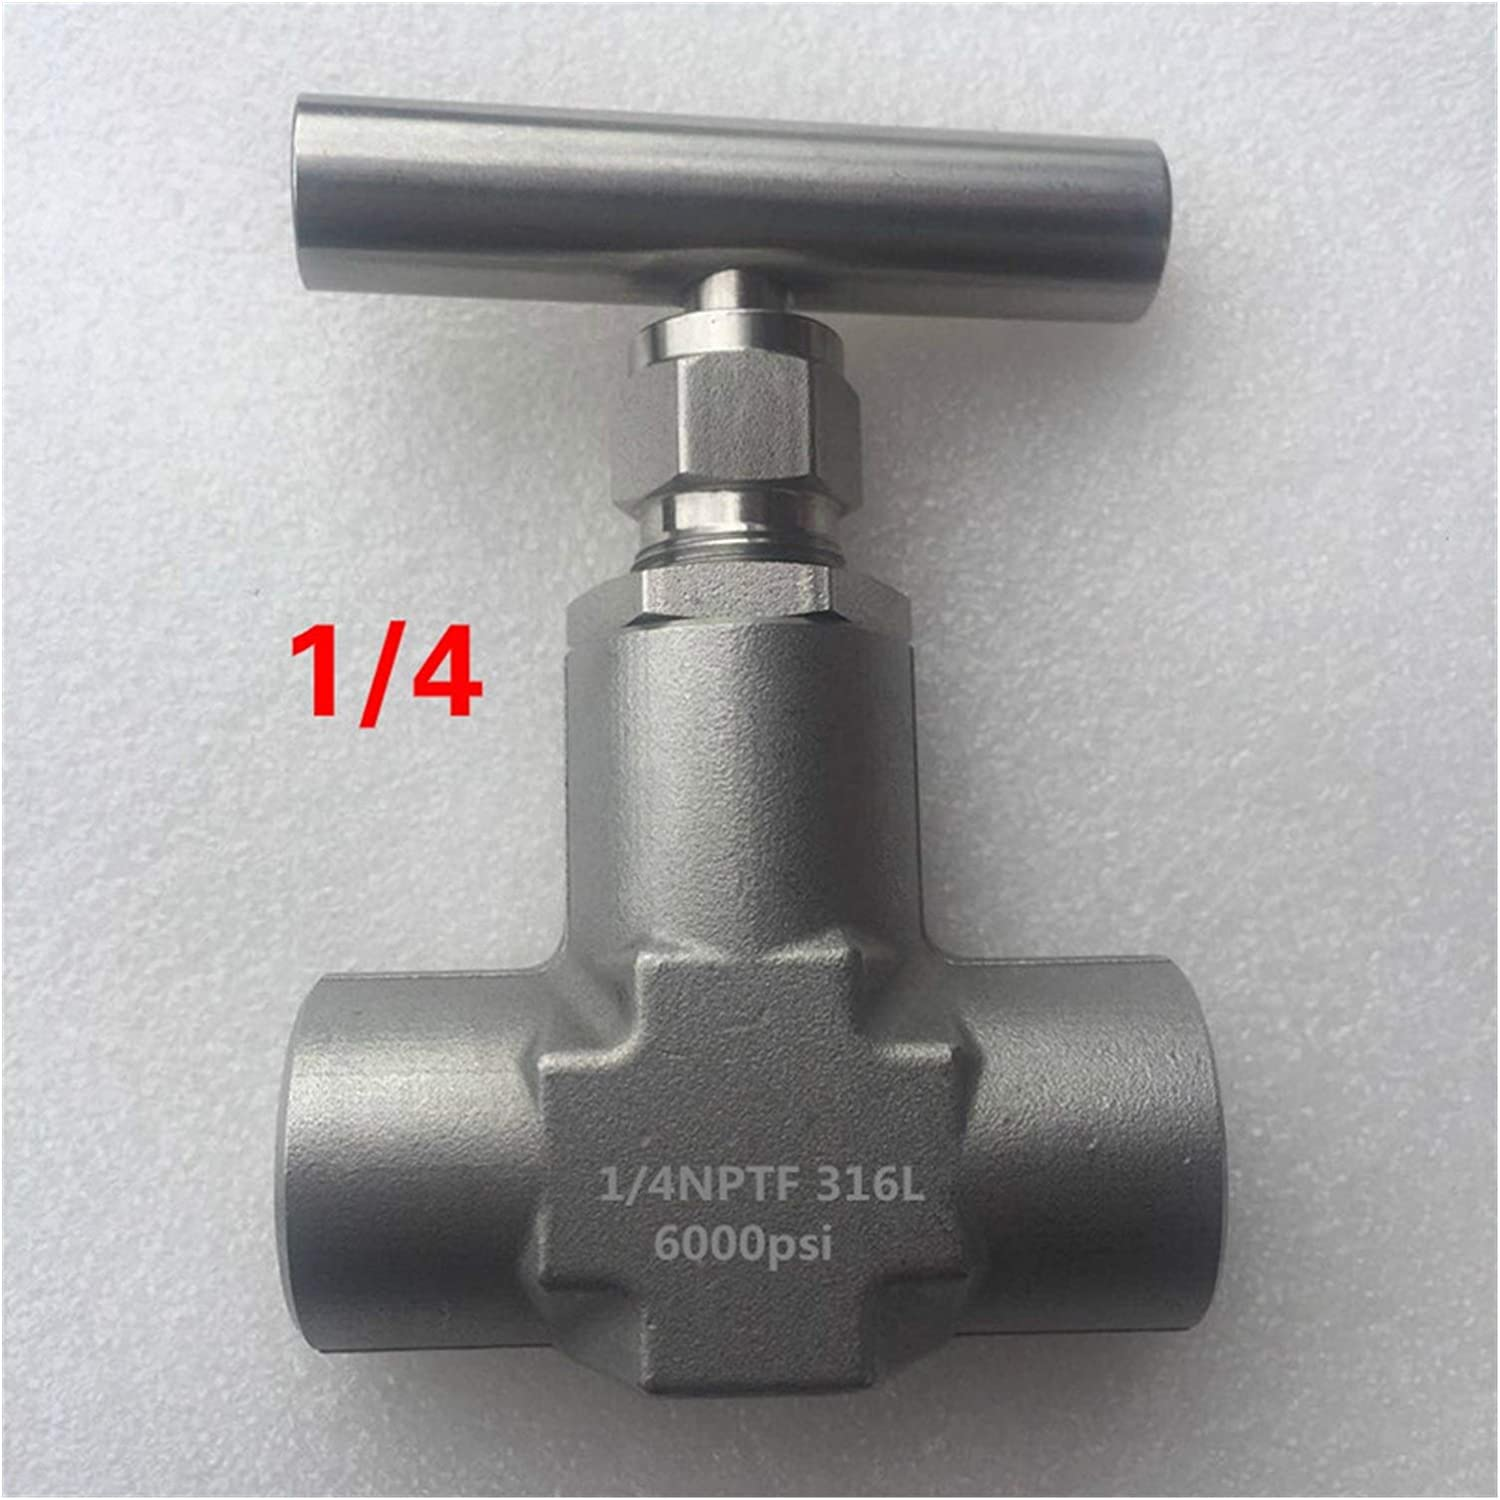 Sacramento Mall Valve action paint marker 316 Stainless Steel High Pressure Need Free shipping